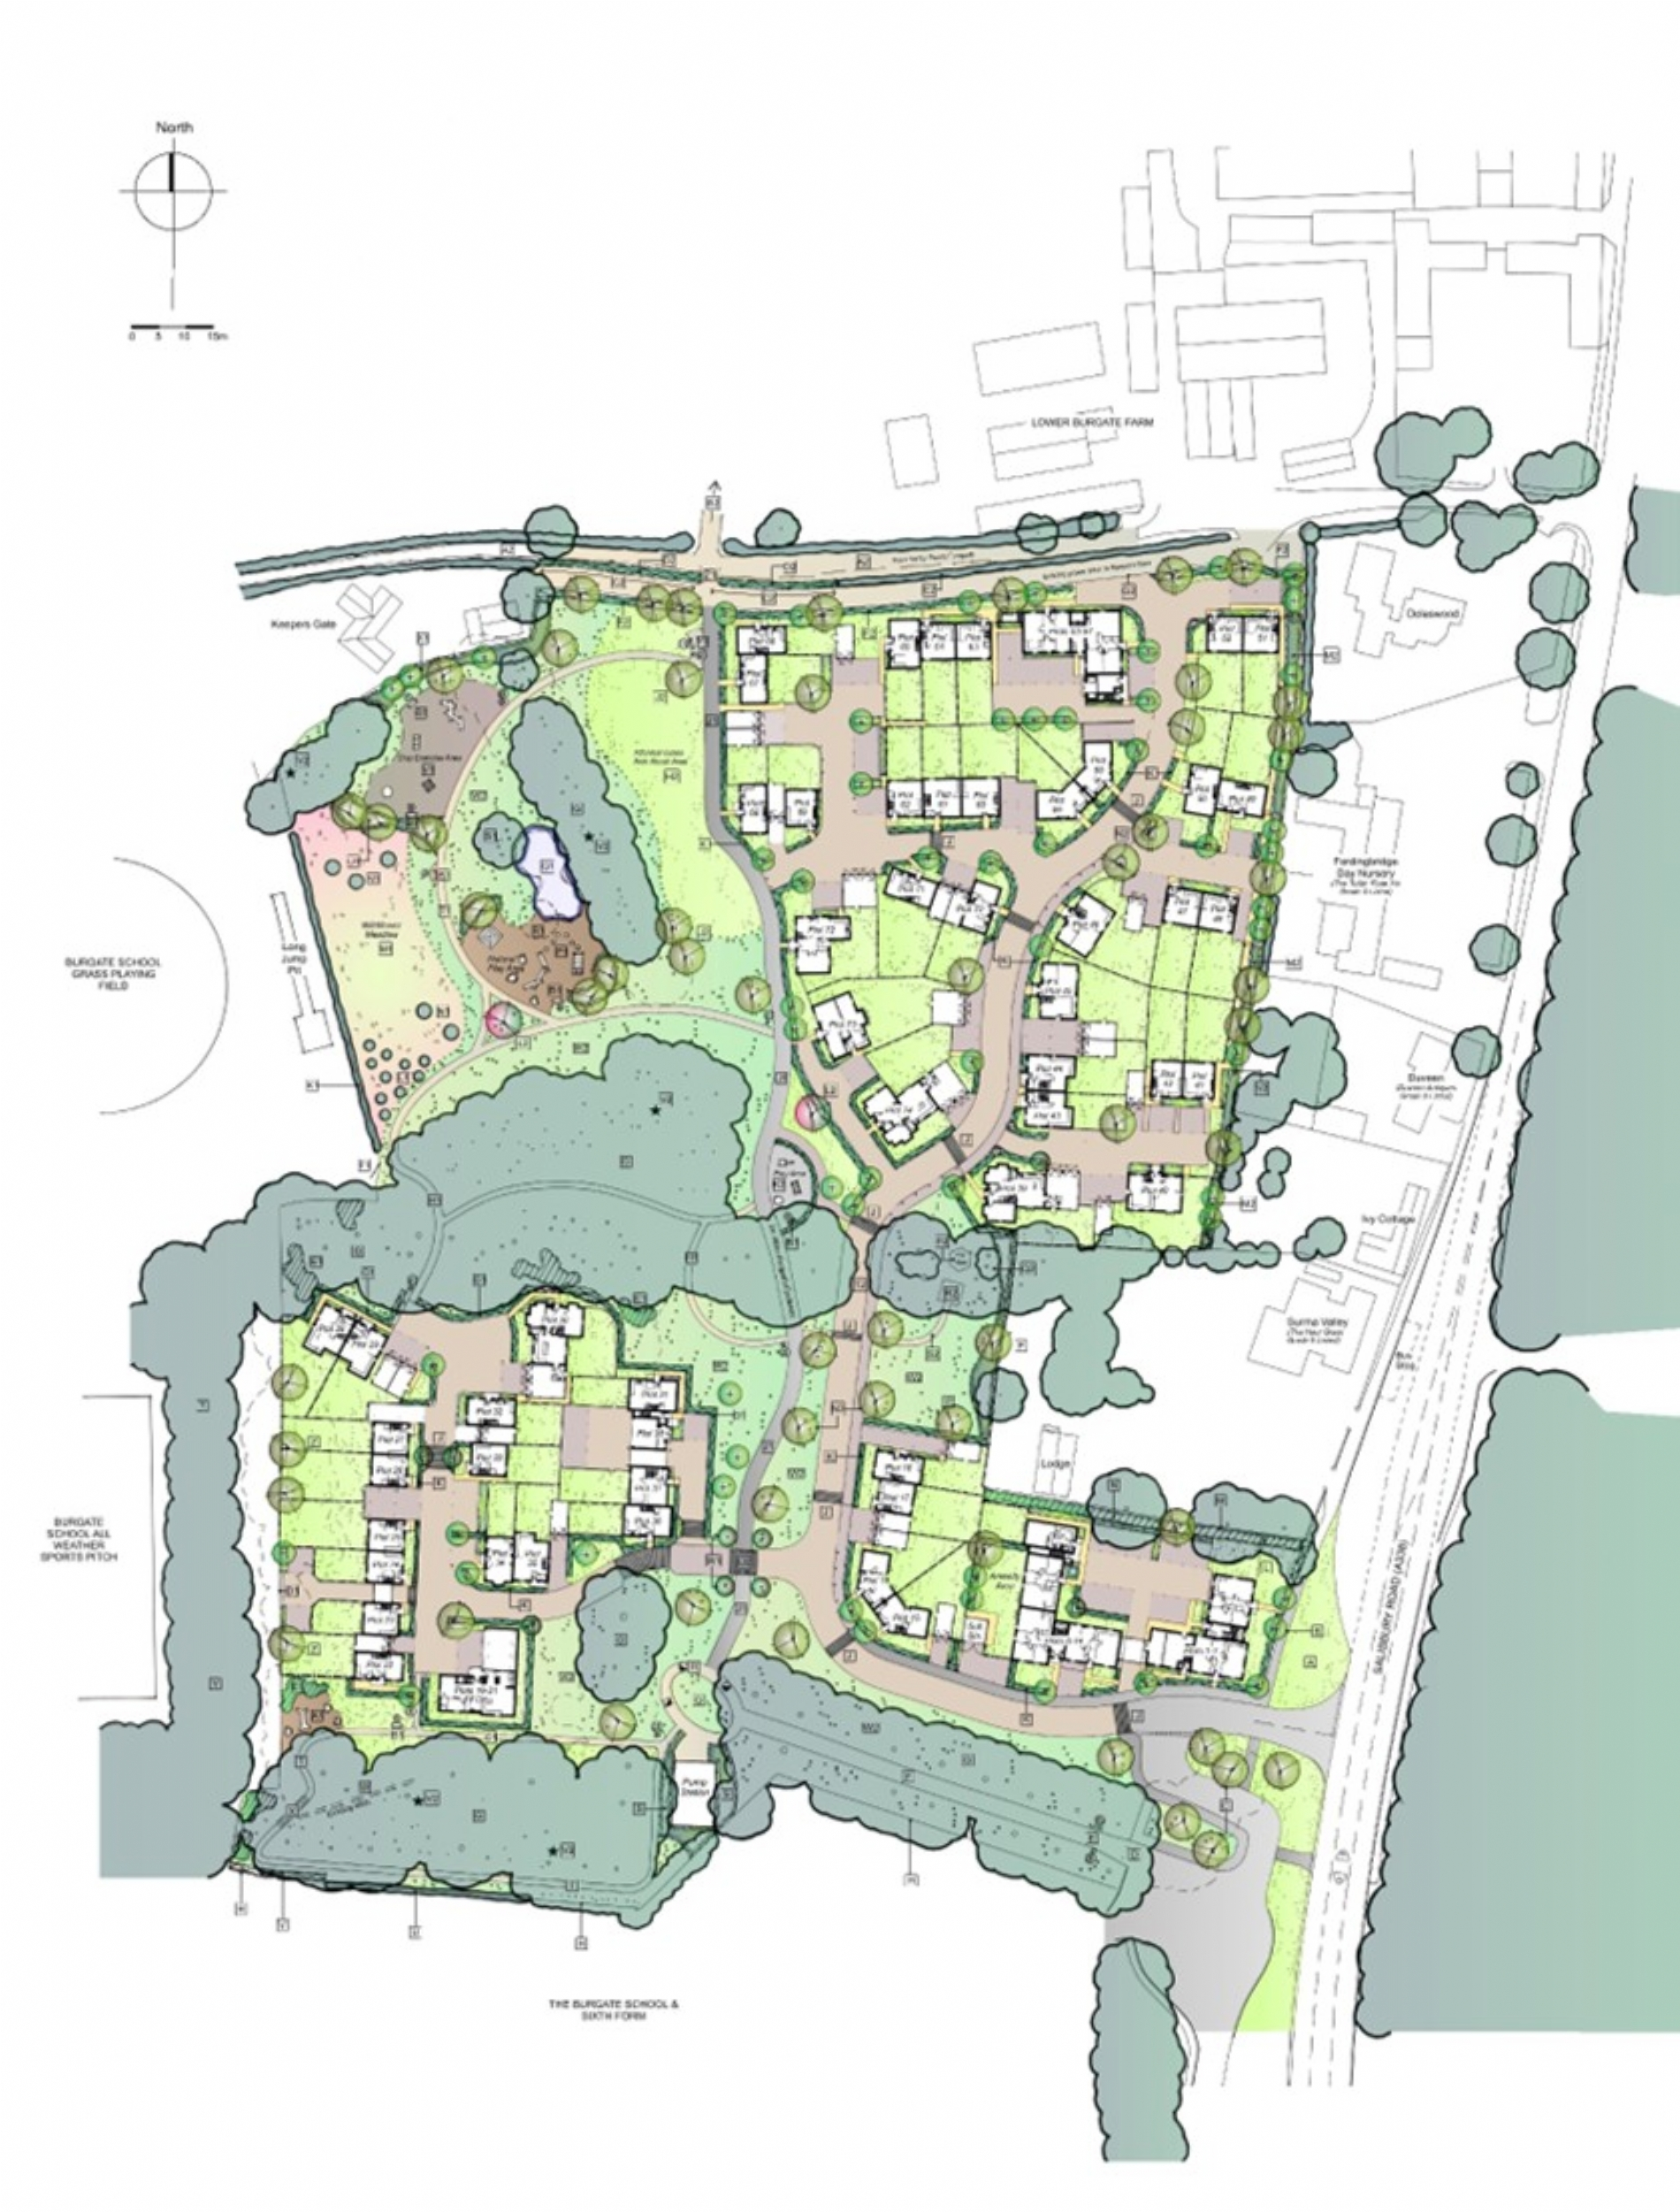 Metis Homes submit planning application for new homes in Fordingbridge